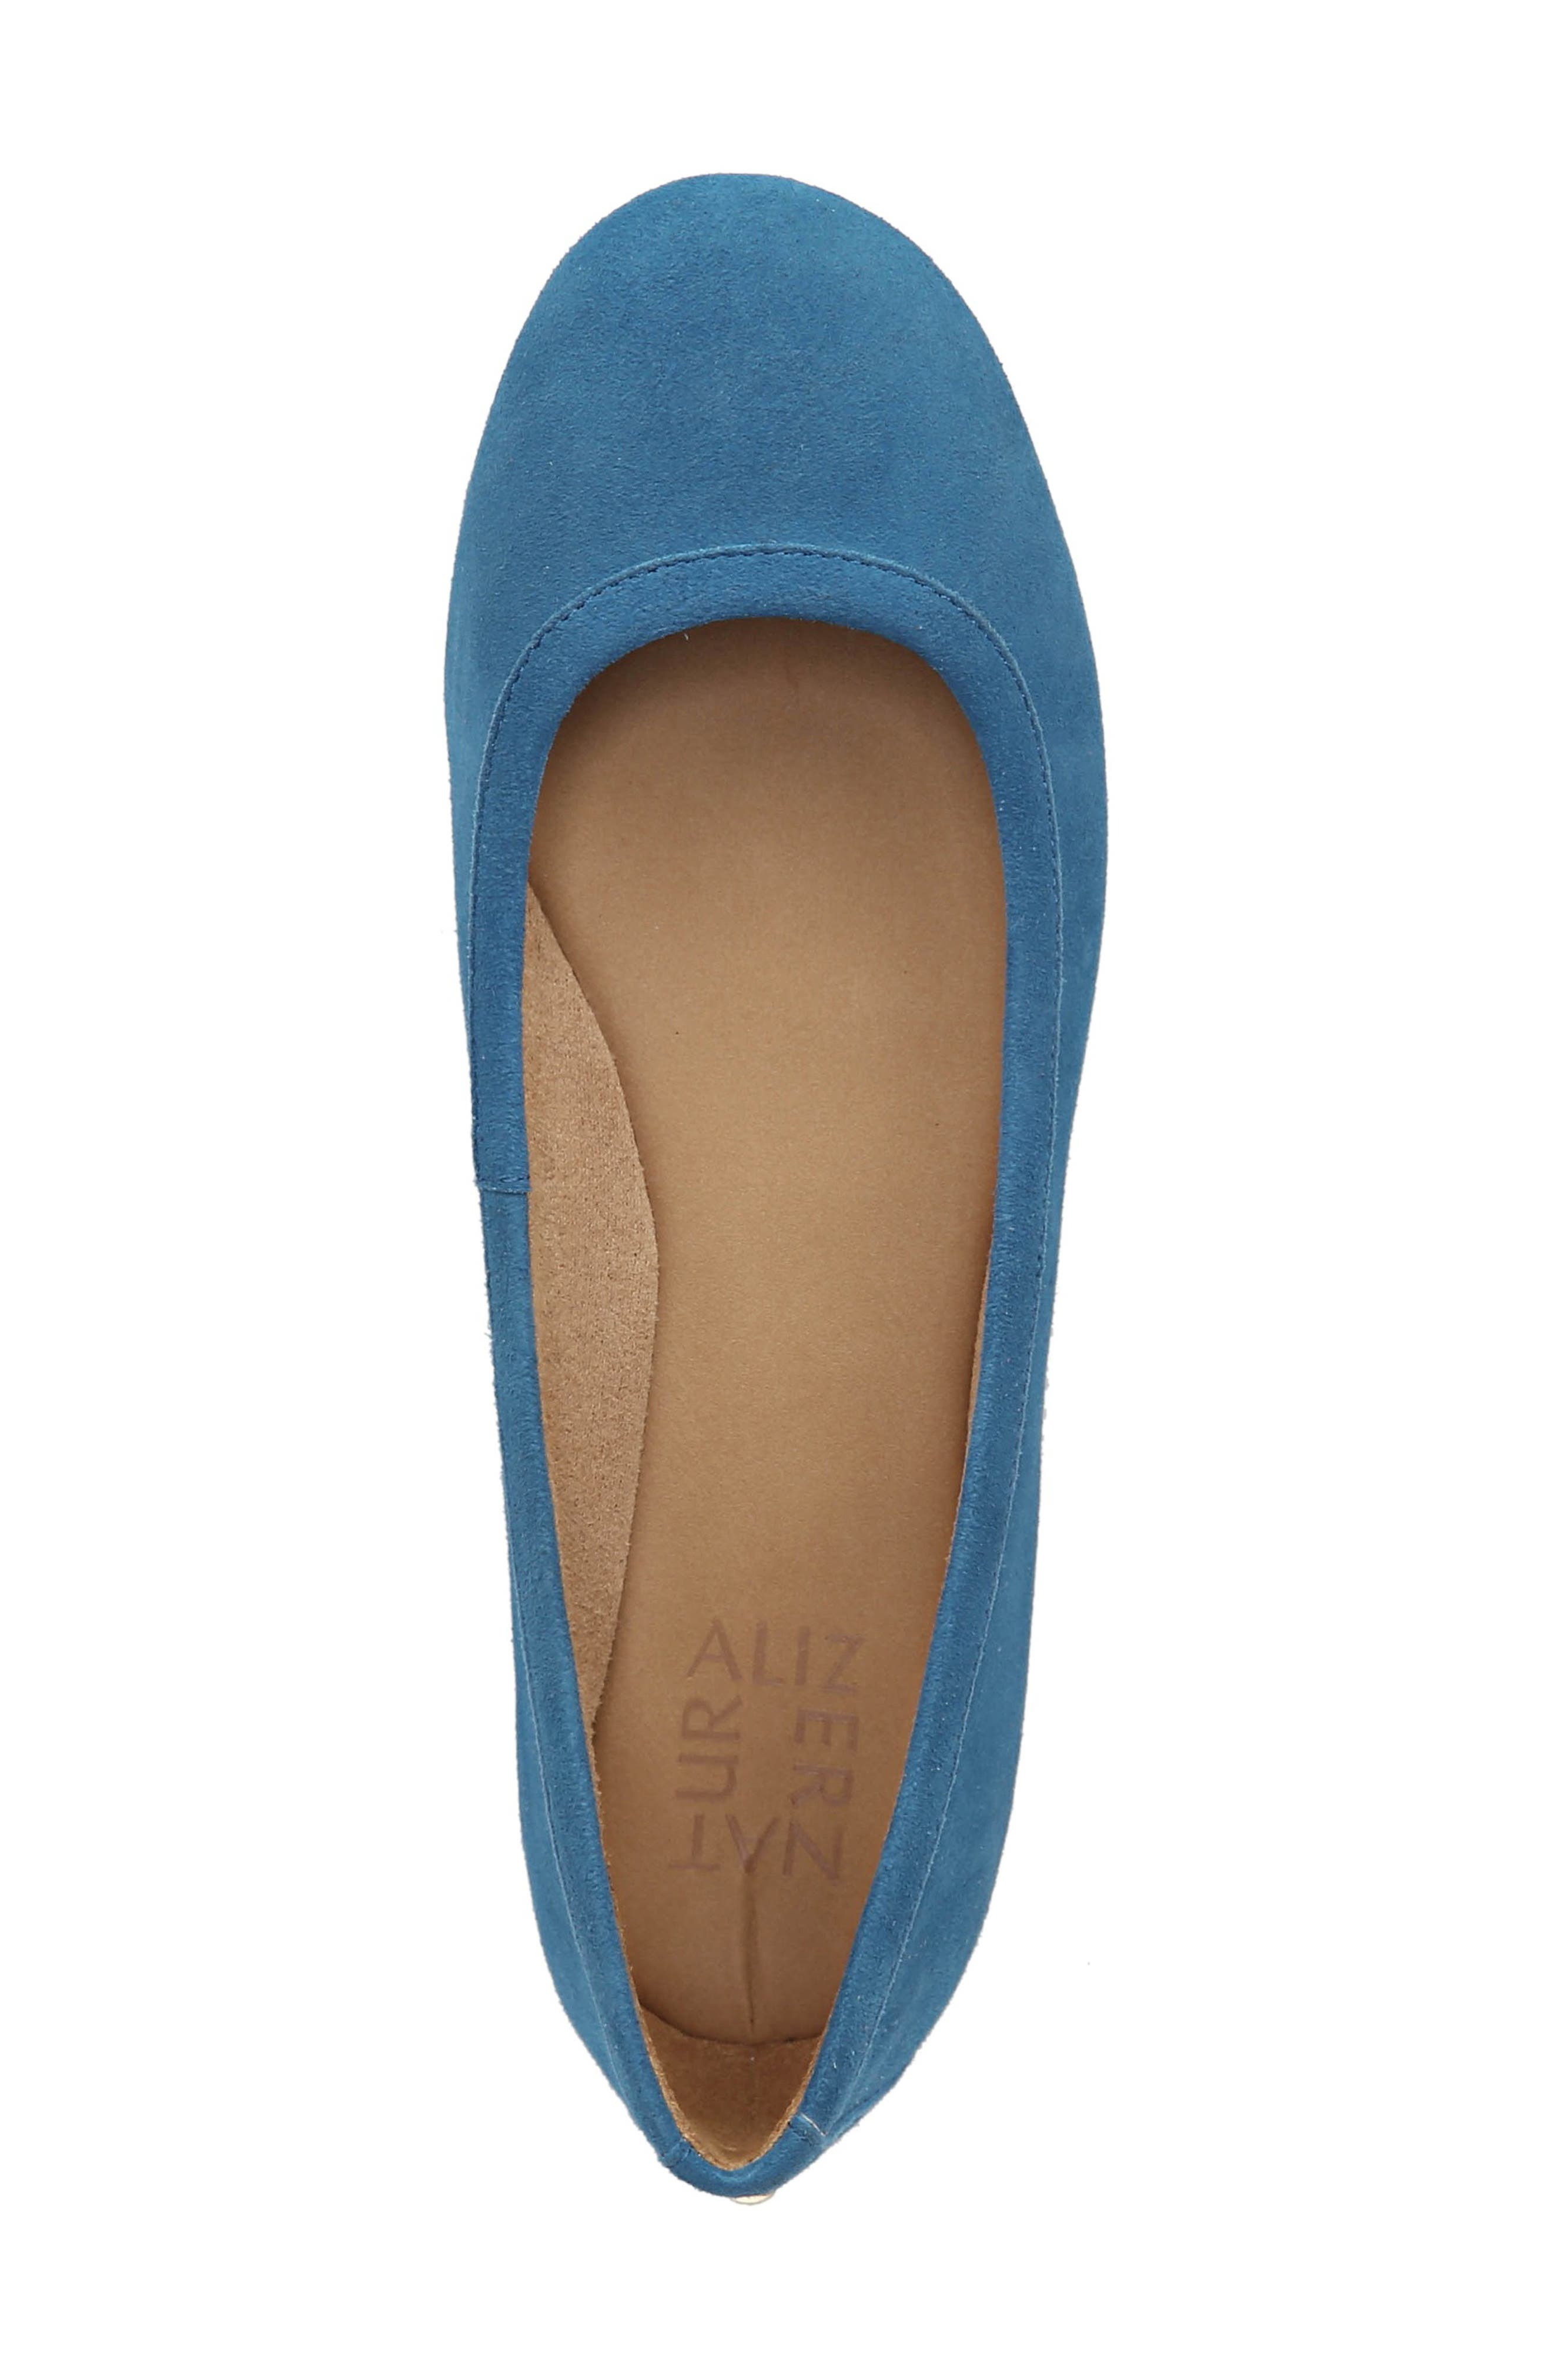 Brittany Flat,                             Alternate thumbnail 5, color,                             ADMIRAL BLUE LEATHER